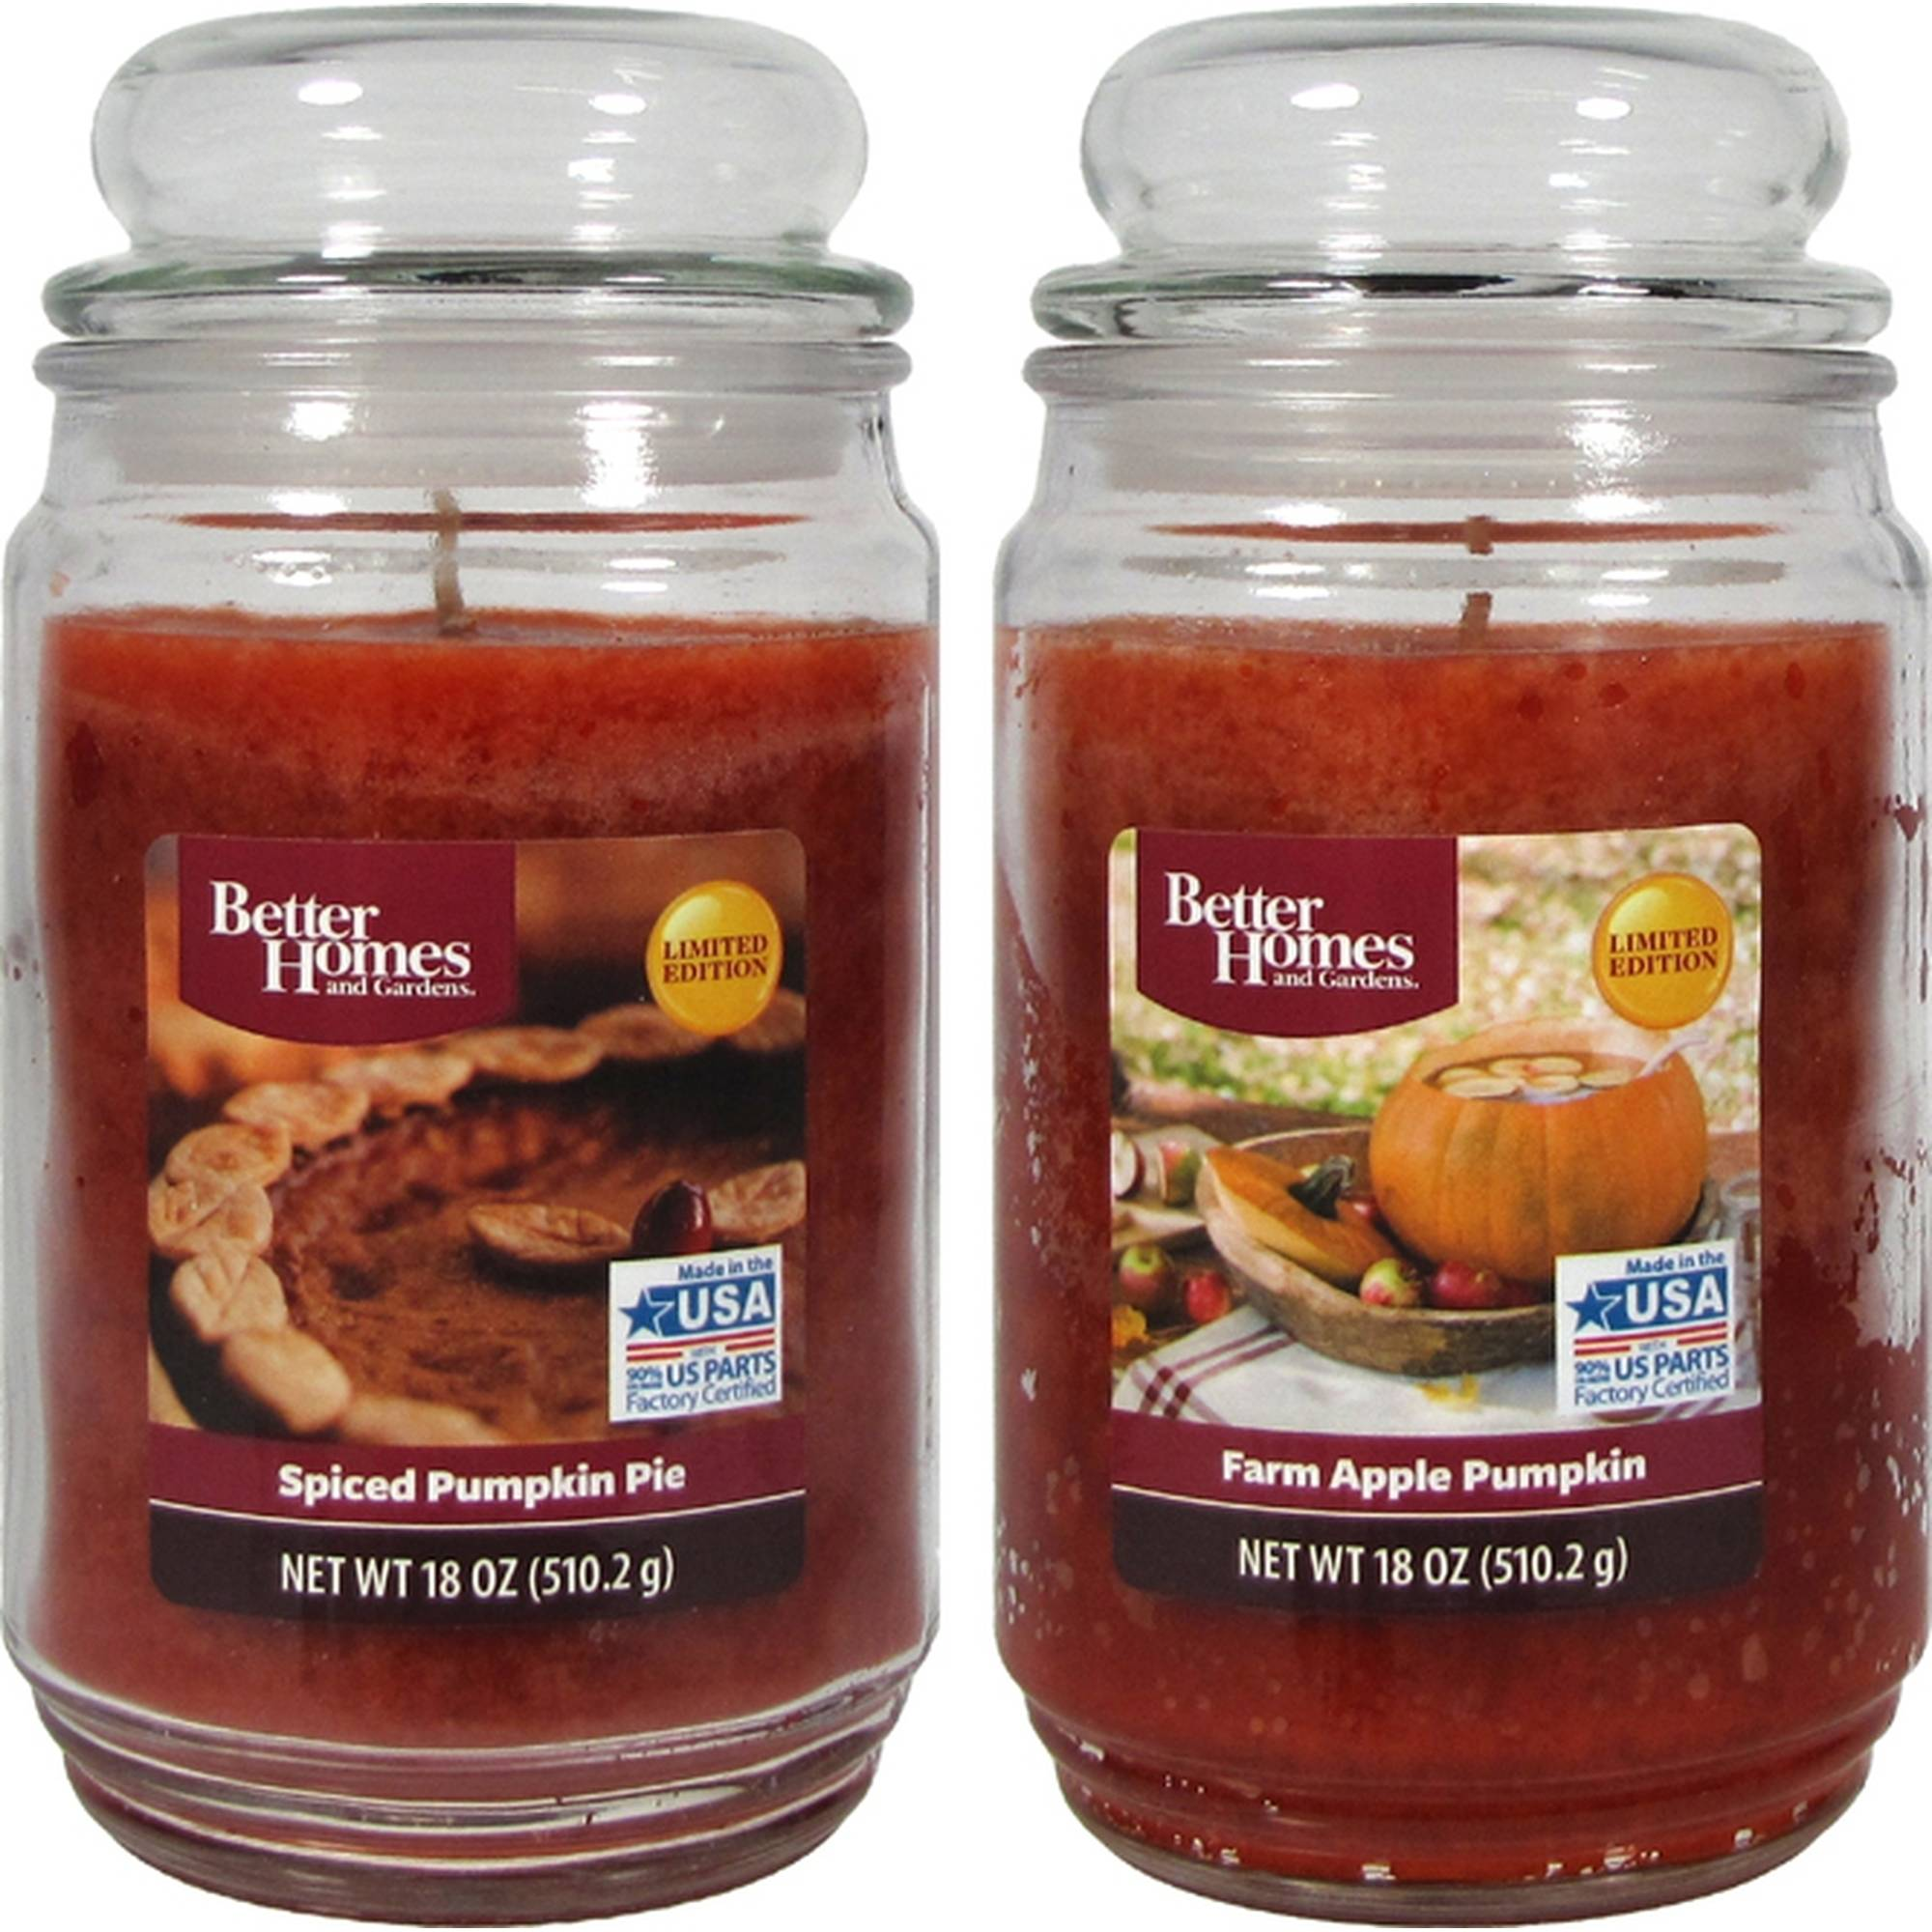 Better Homes And Gardens 18oz 2 pk. PUMPKIN ASSORTMENT - Farm Apple Pumpkin, Spiced Pumpkin Pie